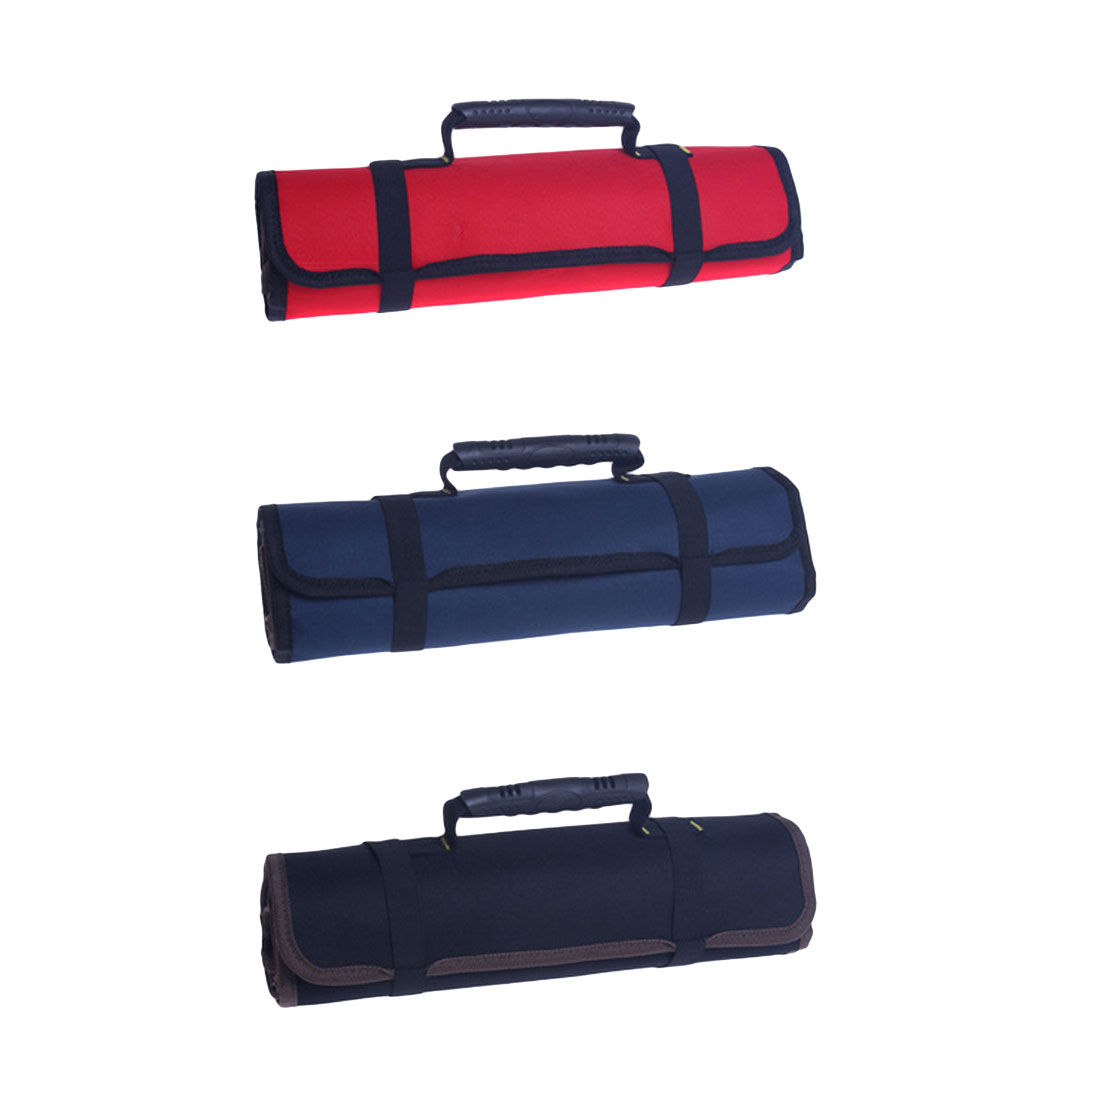 Multifunction Tool Bags Practical Carrying Handles Oxford Canvas Chisel Roll Bags For Tool 3 Colors Instrument CaseMultifunction Tool Bags Practical Carrying Handles Oxford Canvas Chisel Roll Bags For Tool 3 Colors Instrument Case